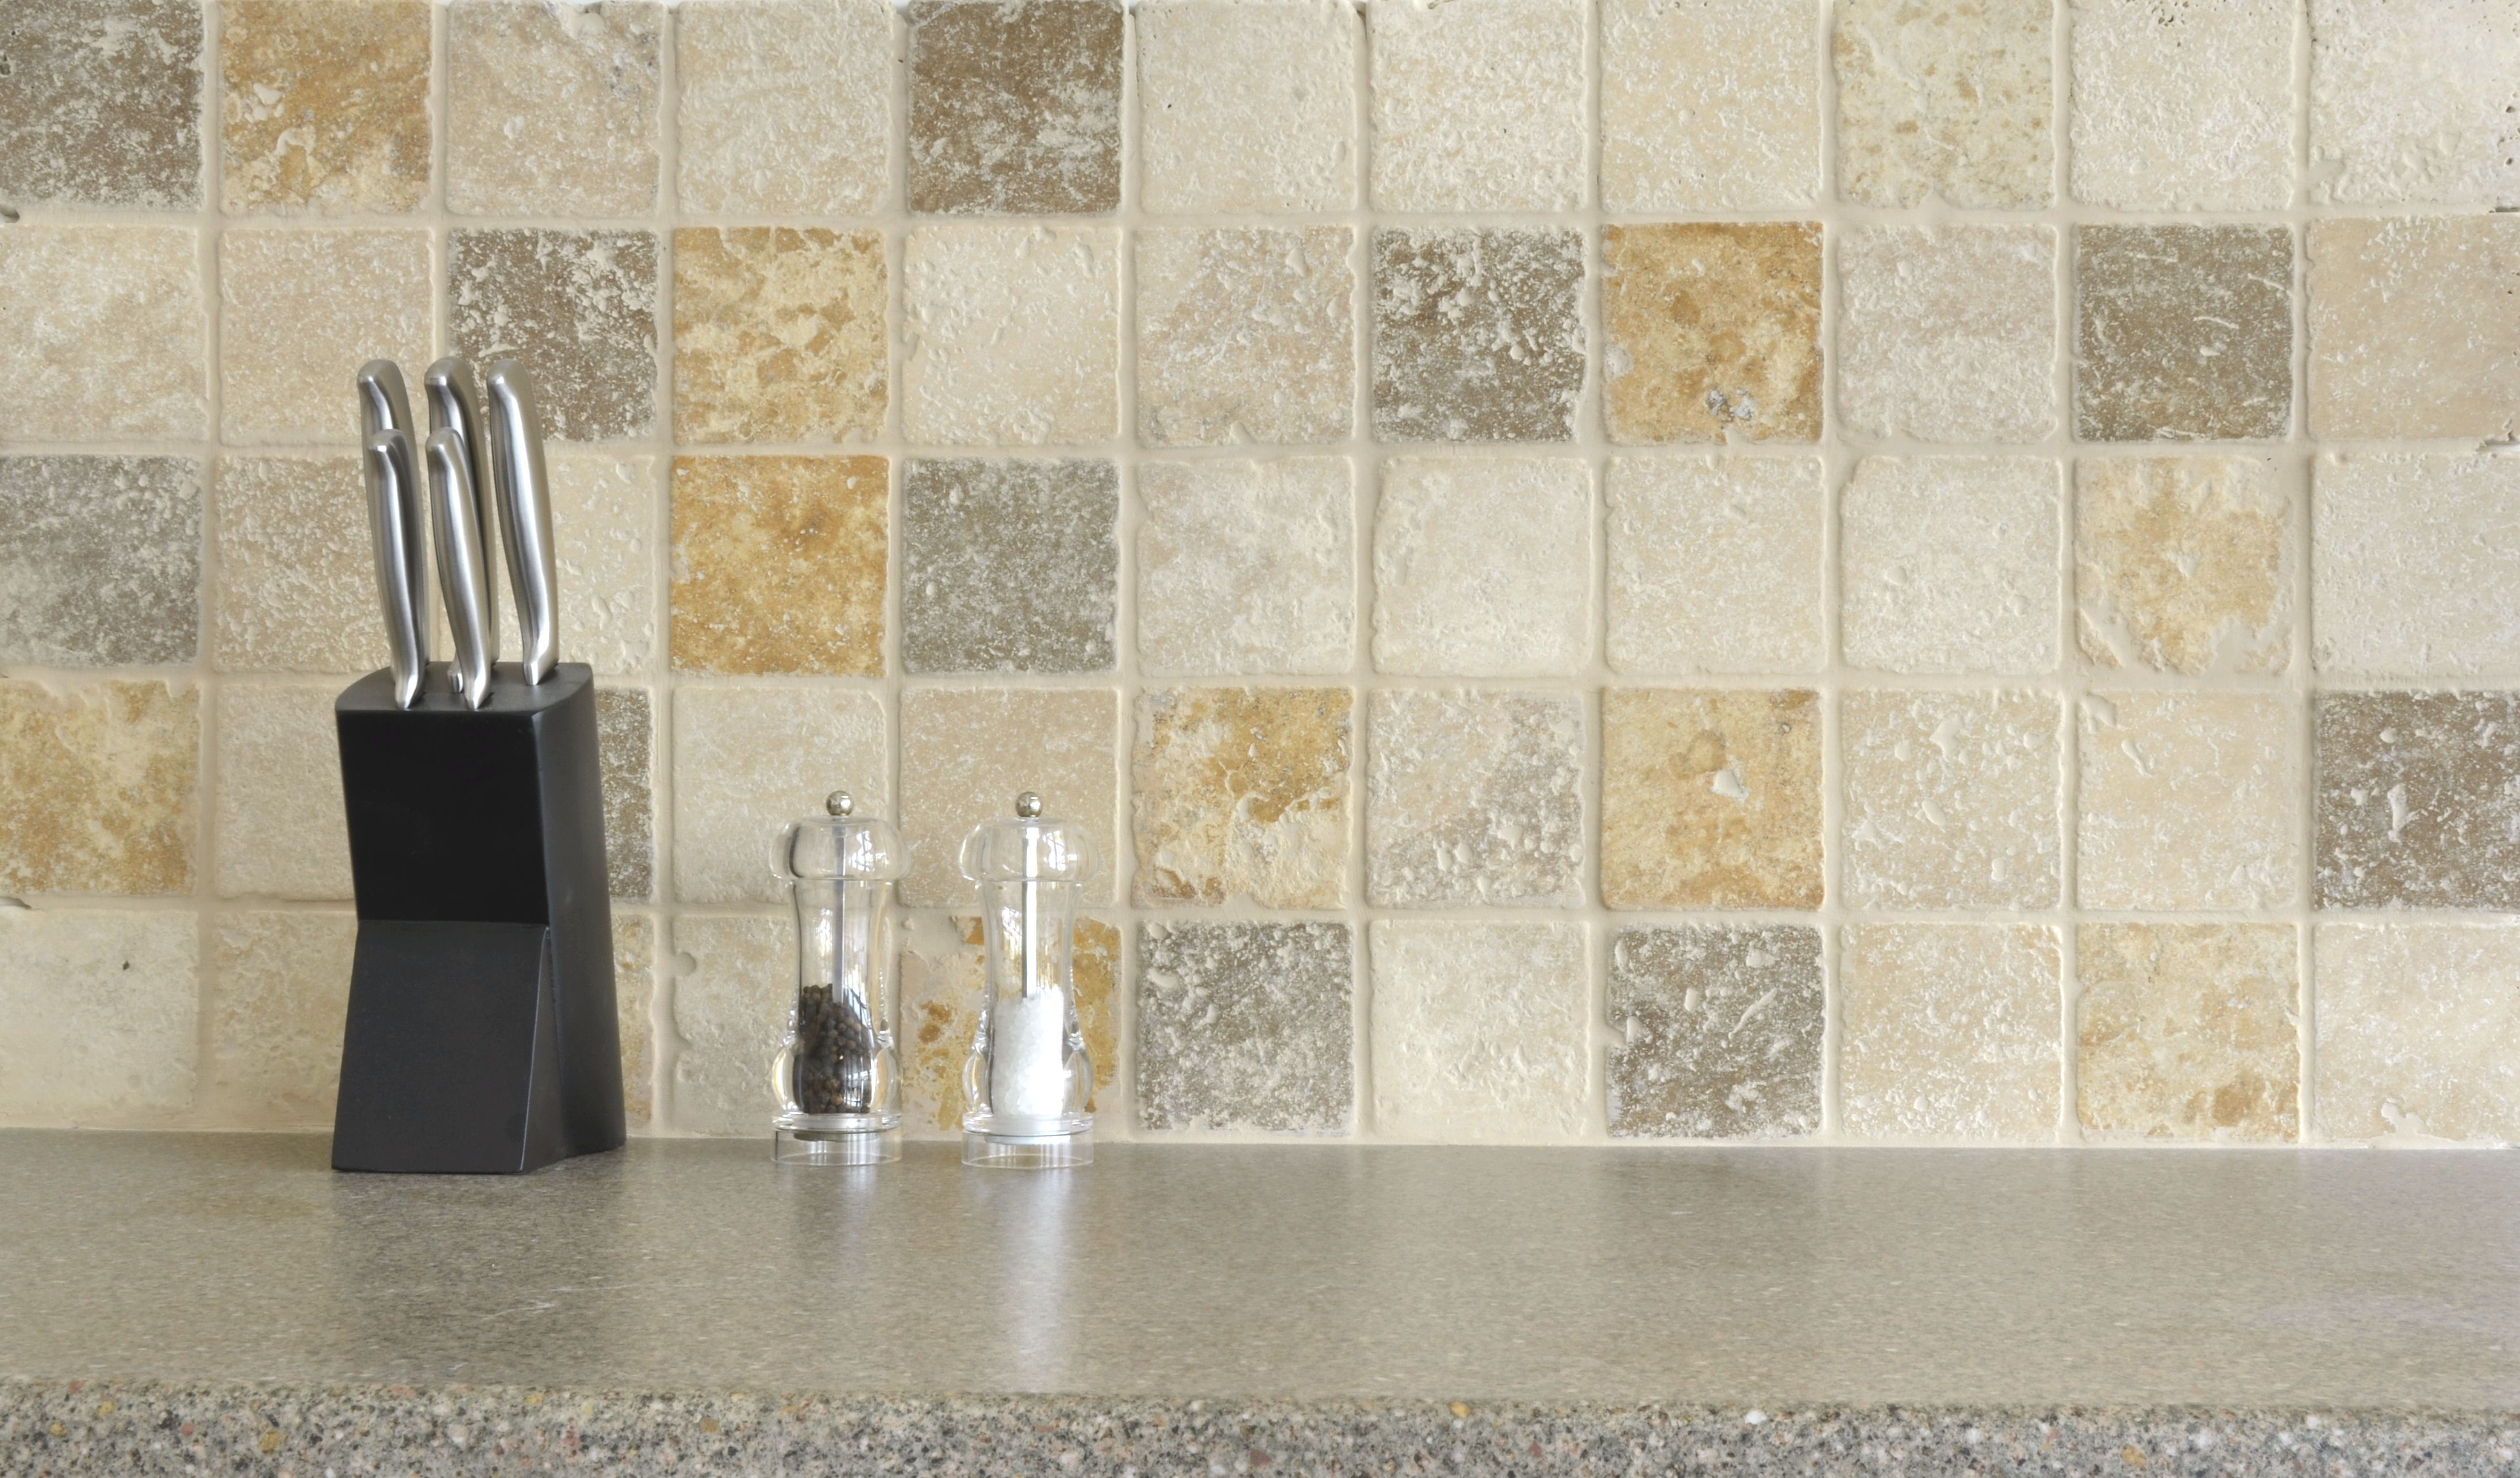 Tumbled Travertine Yellow White And Brown Mix Roomset Tiles Bathroom Wall Tile Tiles Natural Stone Kitchen